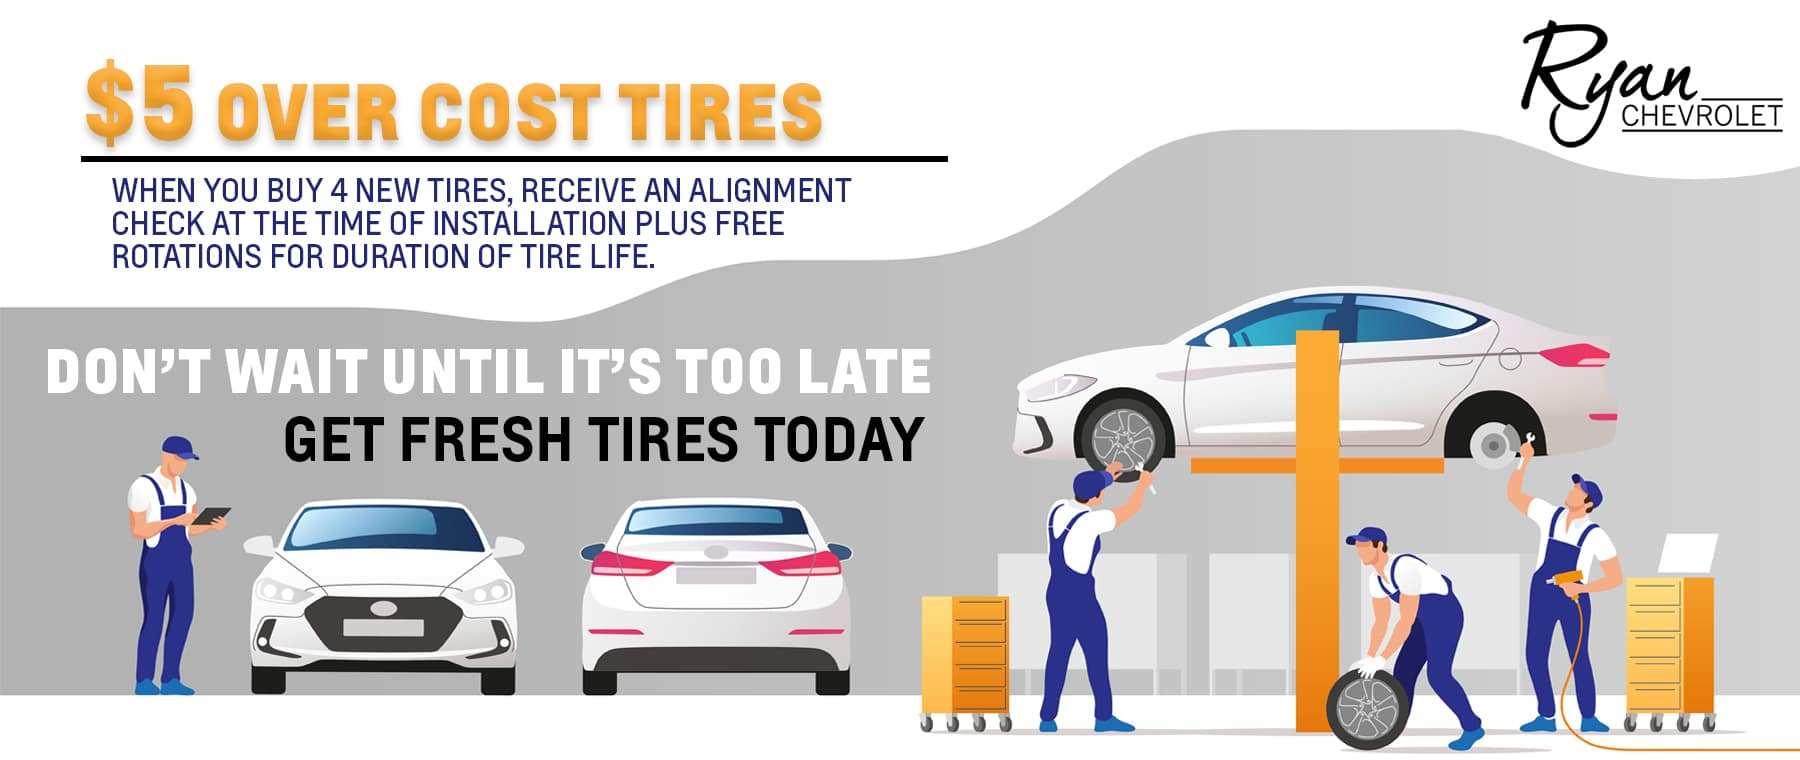 Every Tire. Every Day. $5 Over Cost.